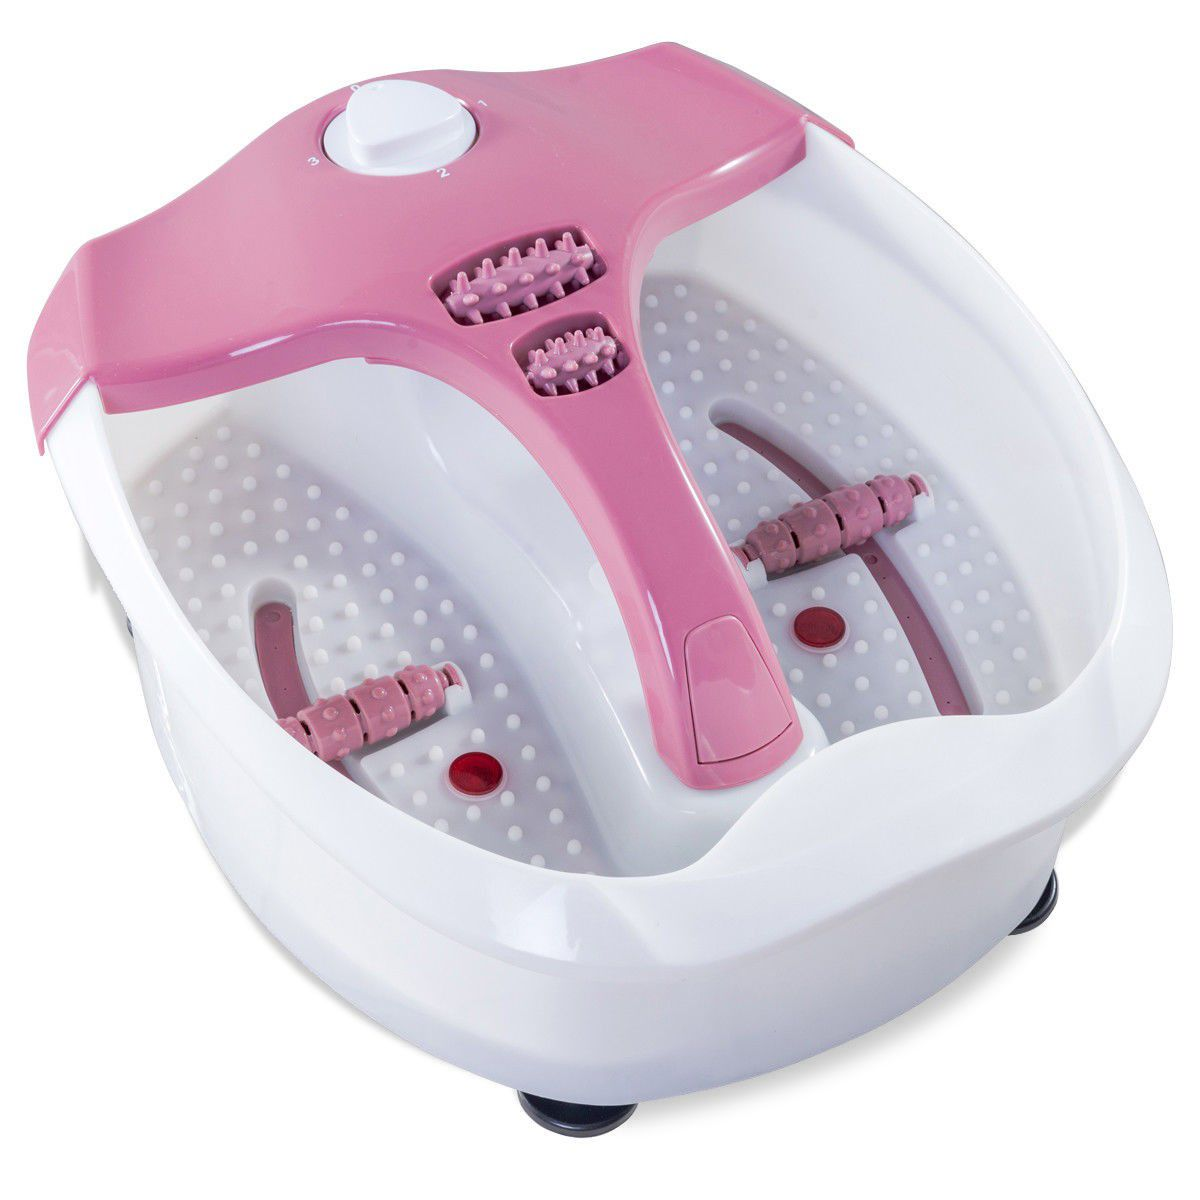 Portable Bubble Heat HF Vibration Foot Spa Massager